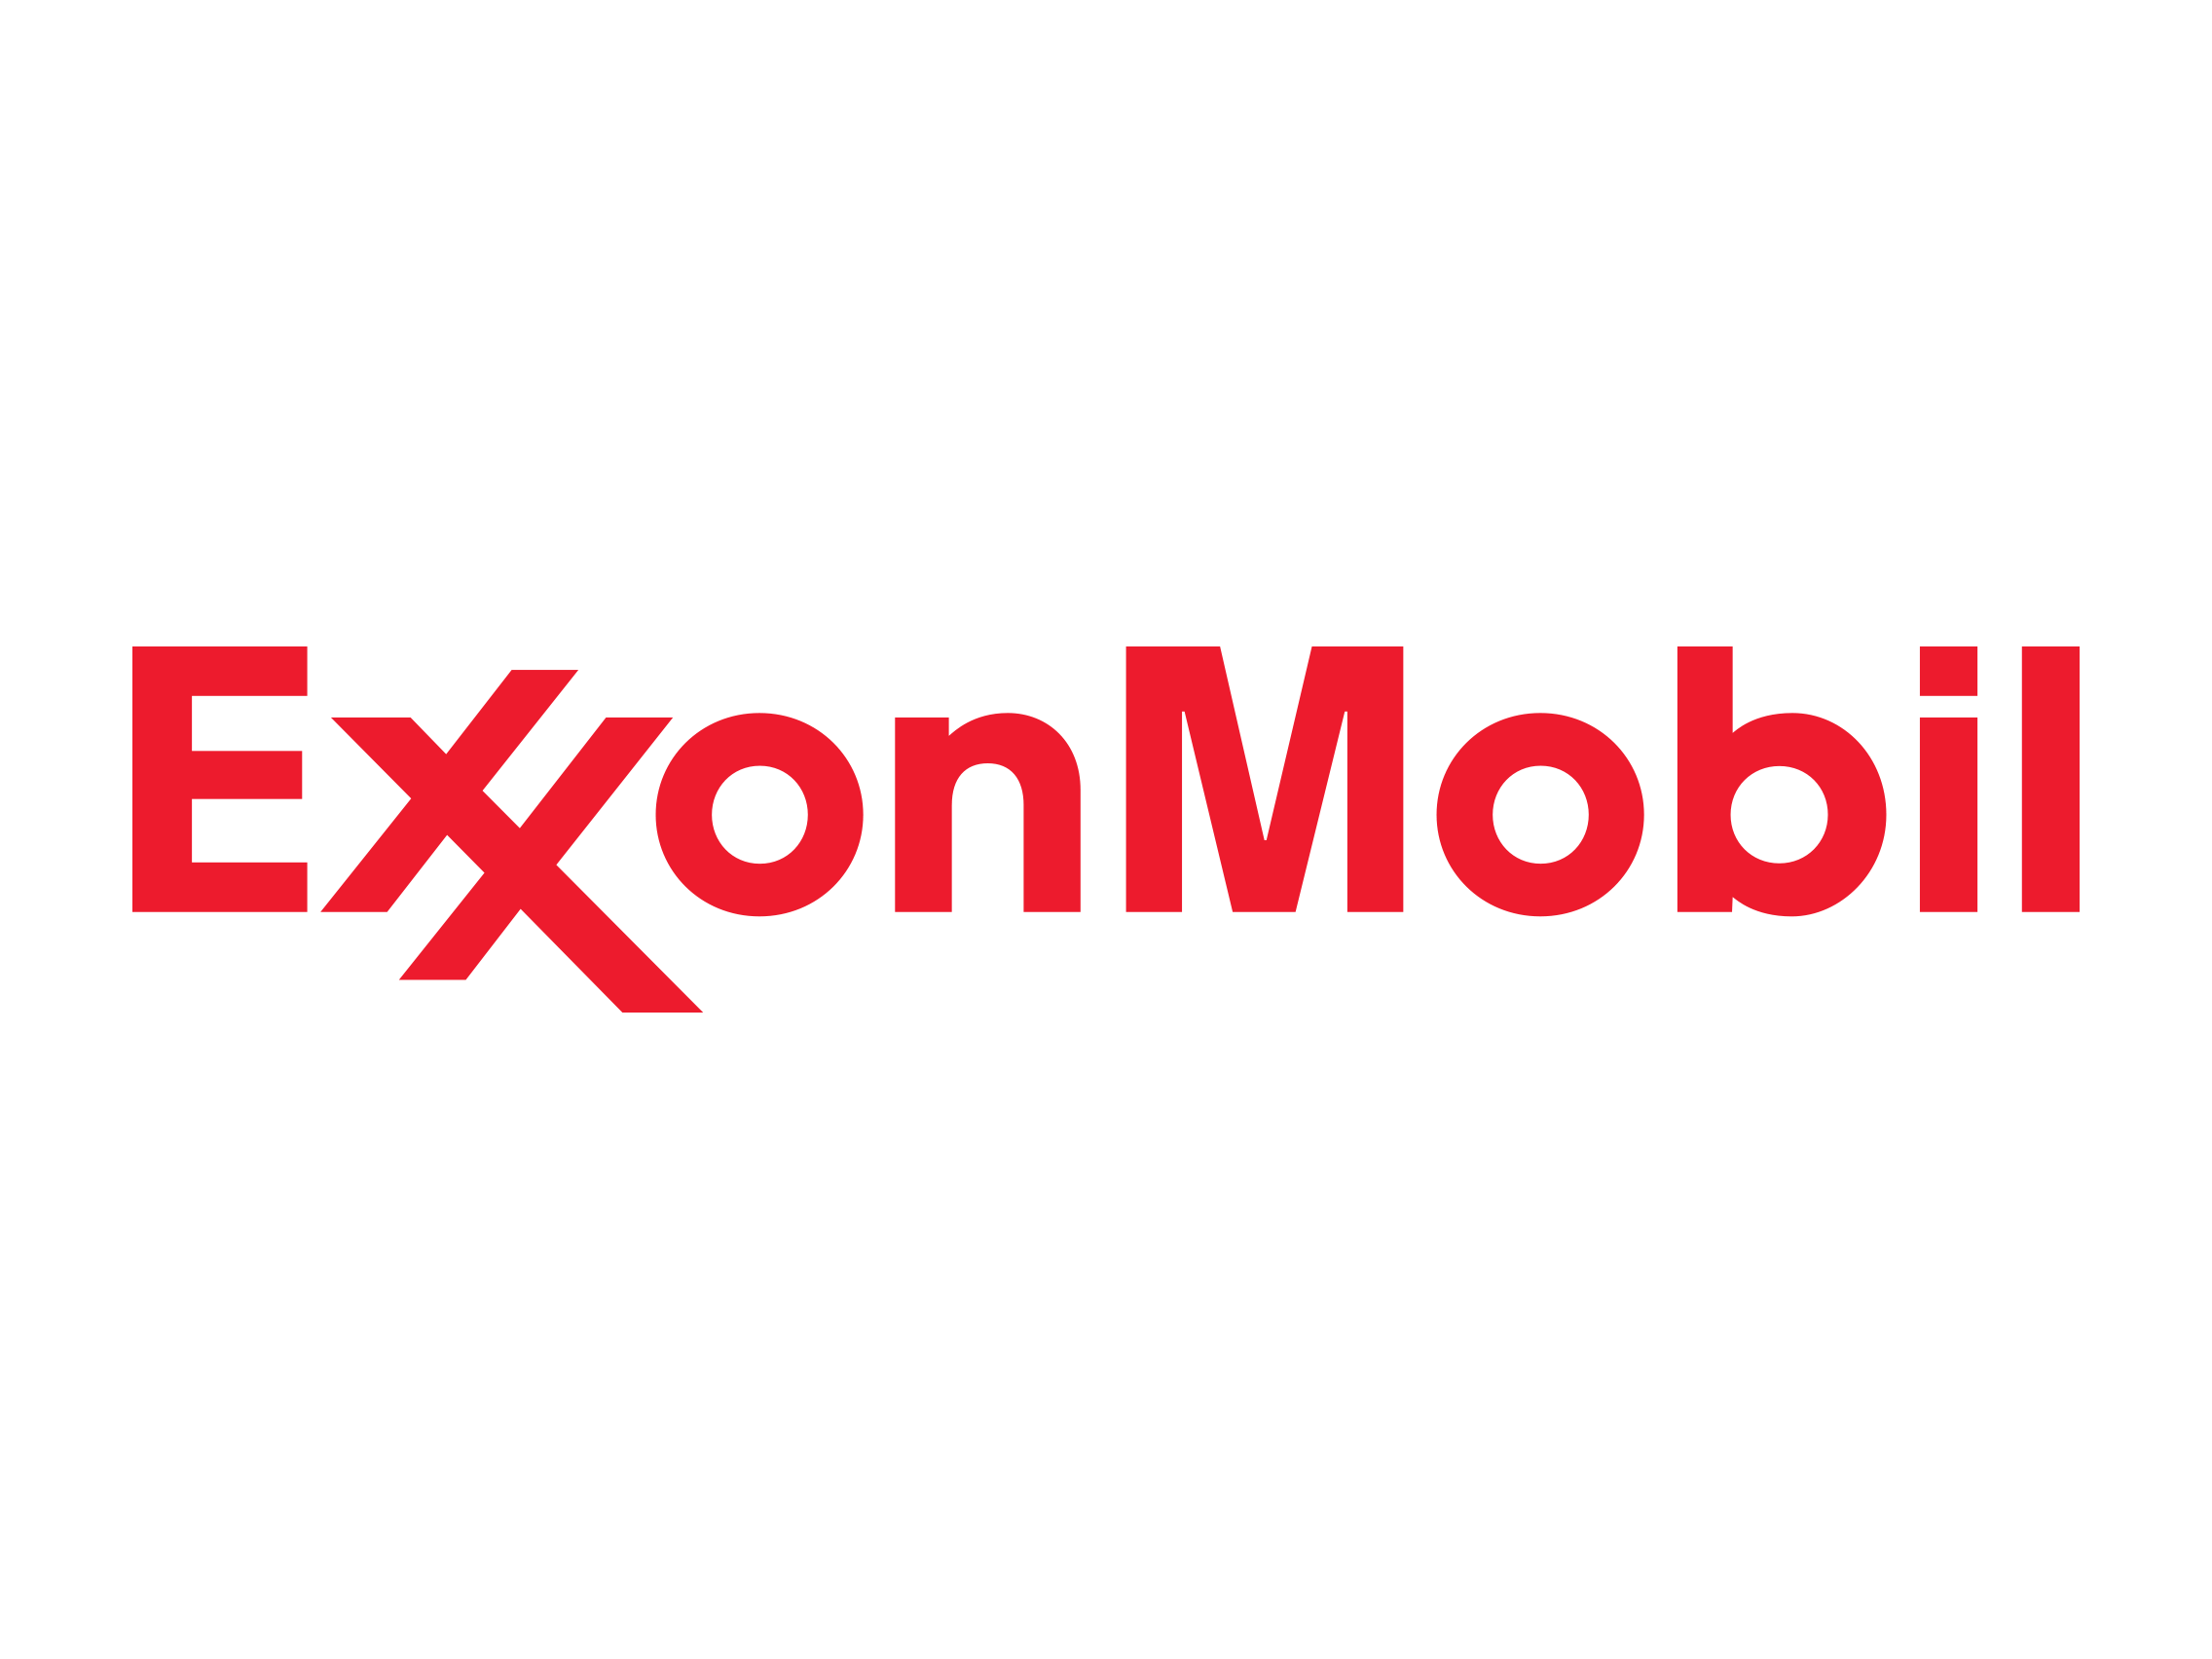 Logo of ExxonMobil